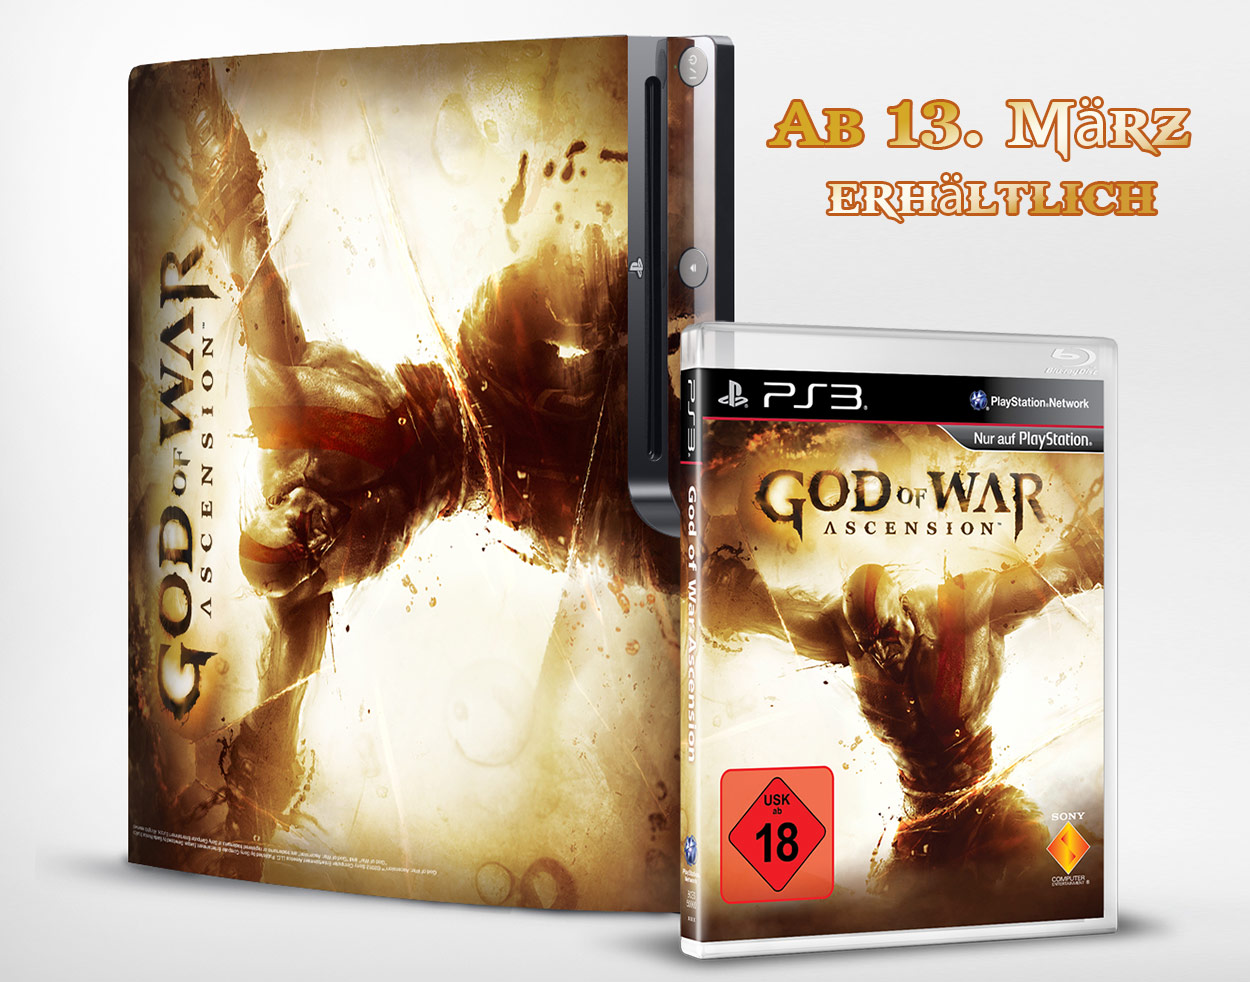 Gewinnspiel – 3 x God of War: Ascension plus PS3 Skins zu verlosen